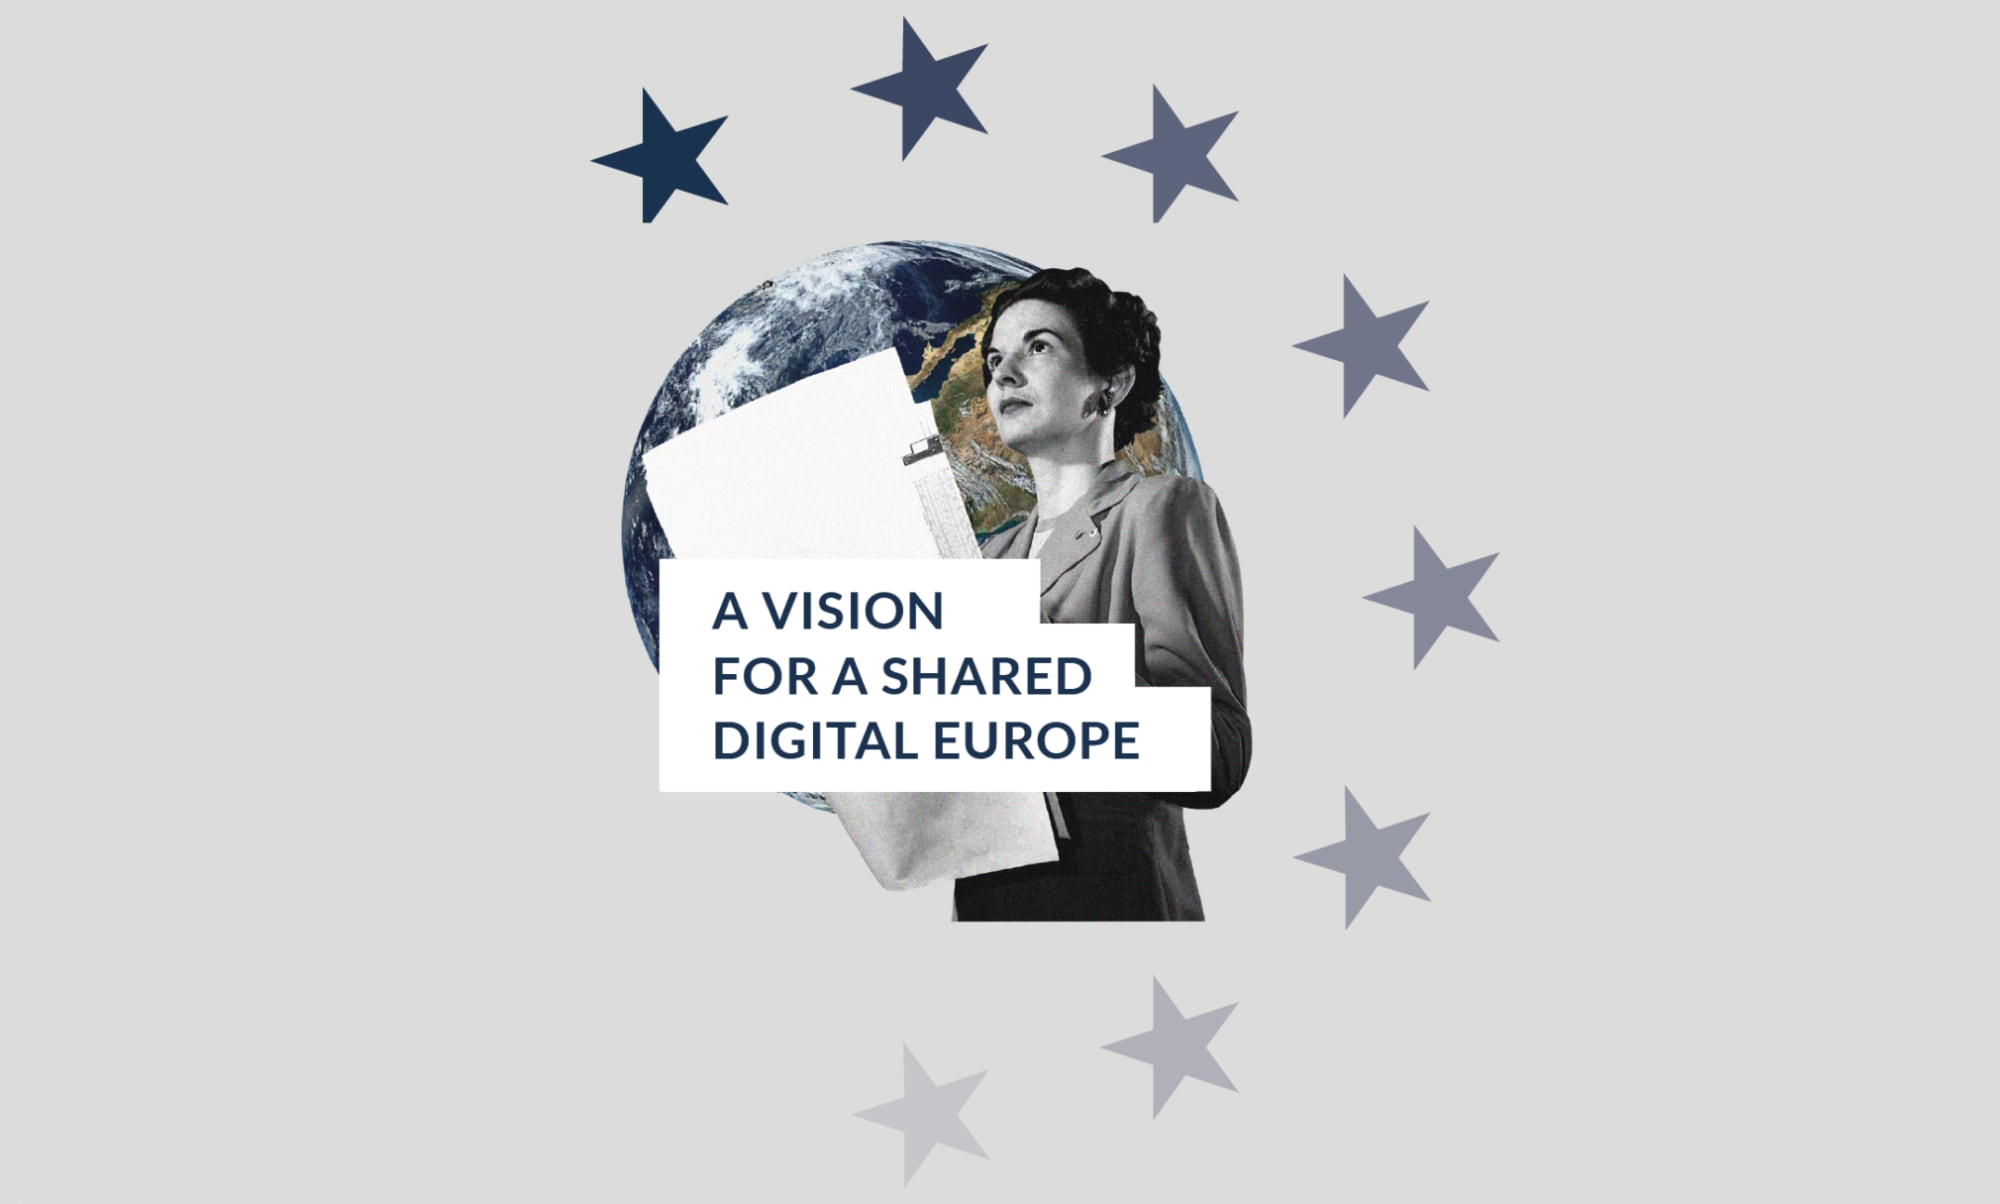 A Vision for a Shared Digital Europe